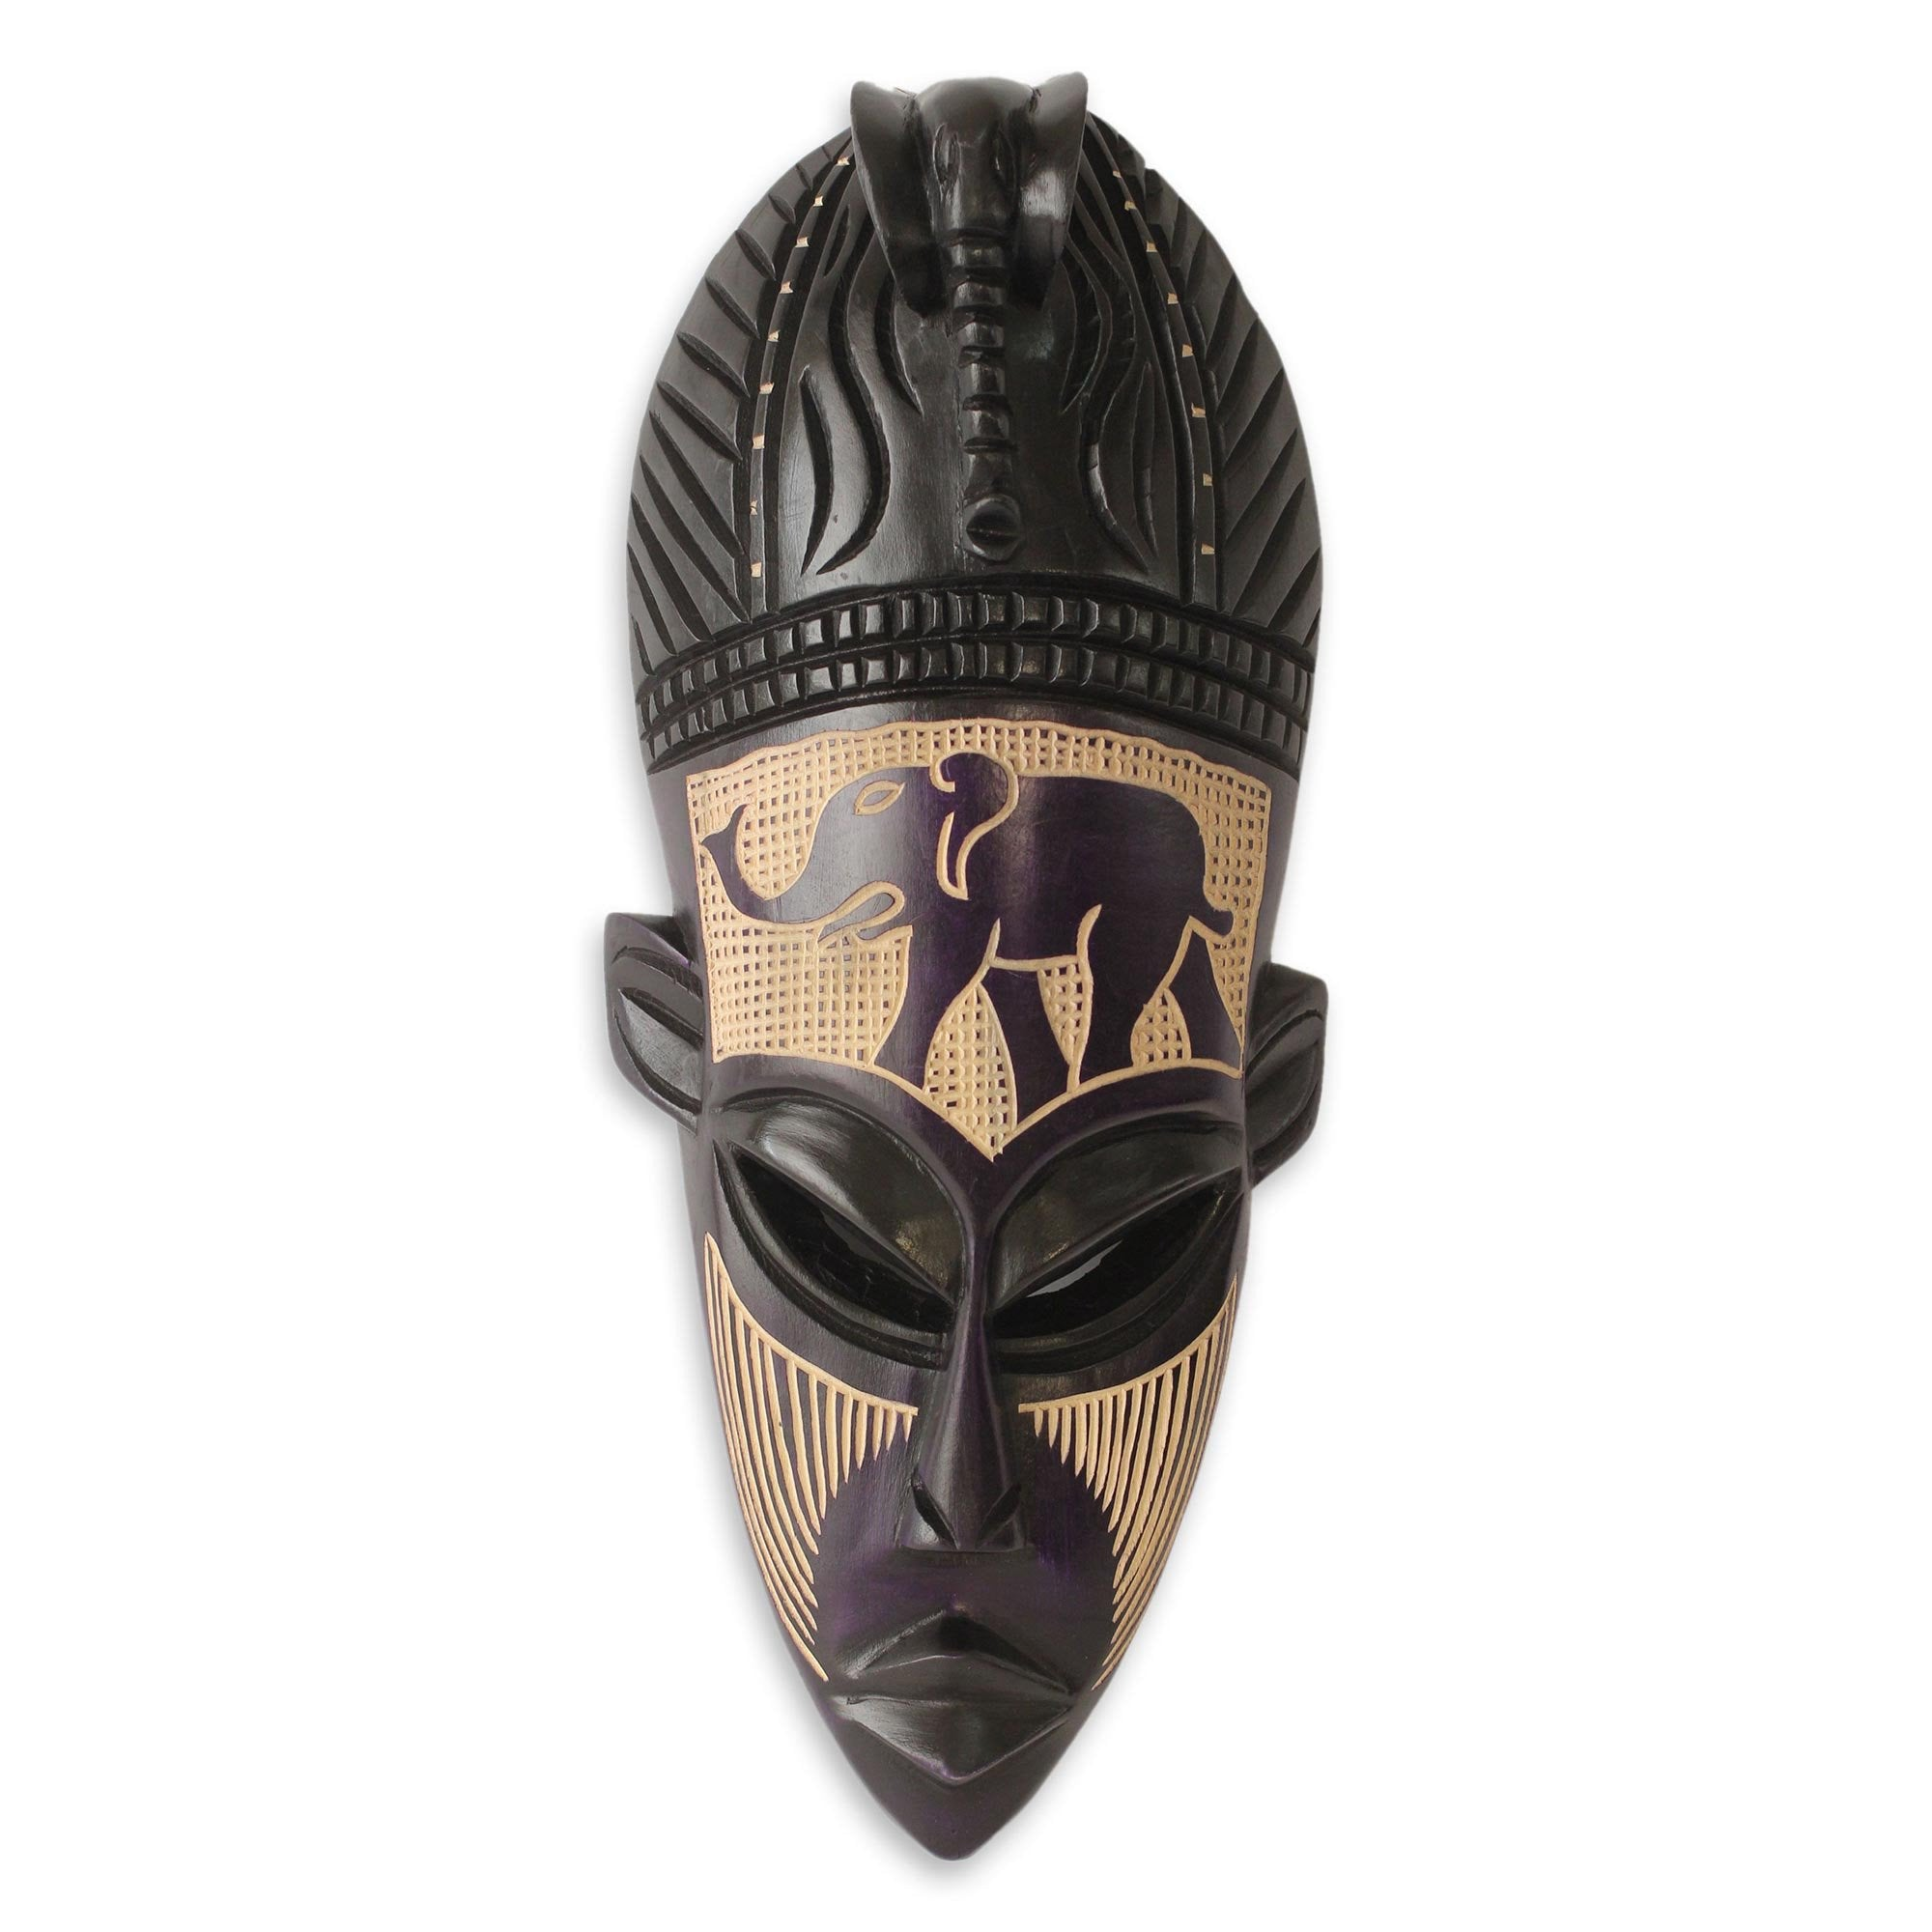 Authentic African Elephant Spirit Mask By Theophilus